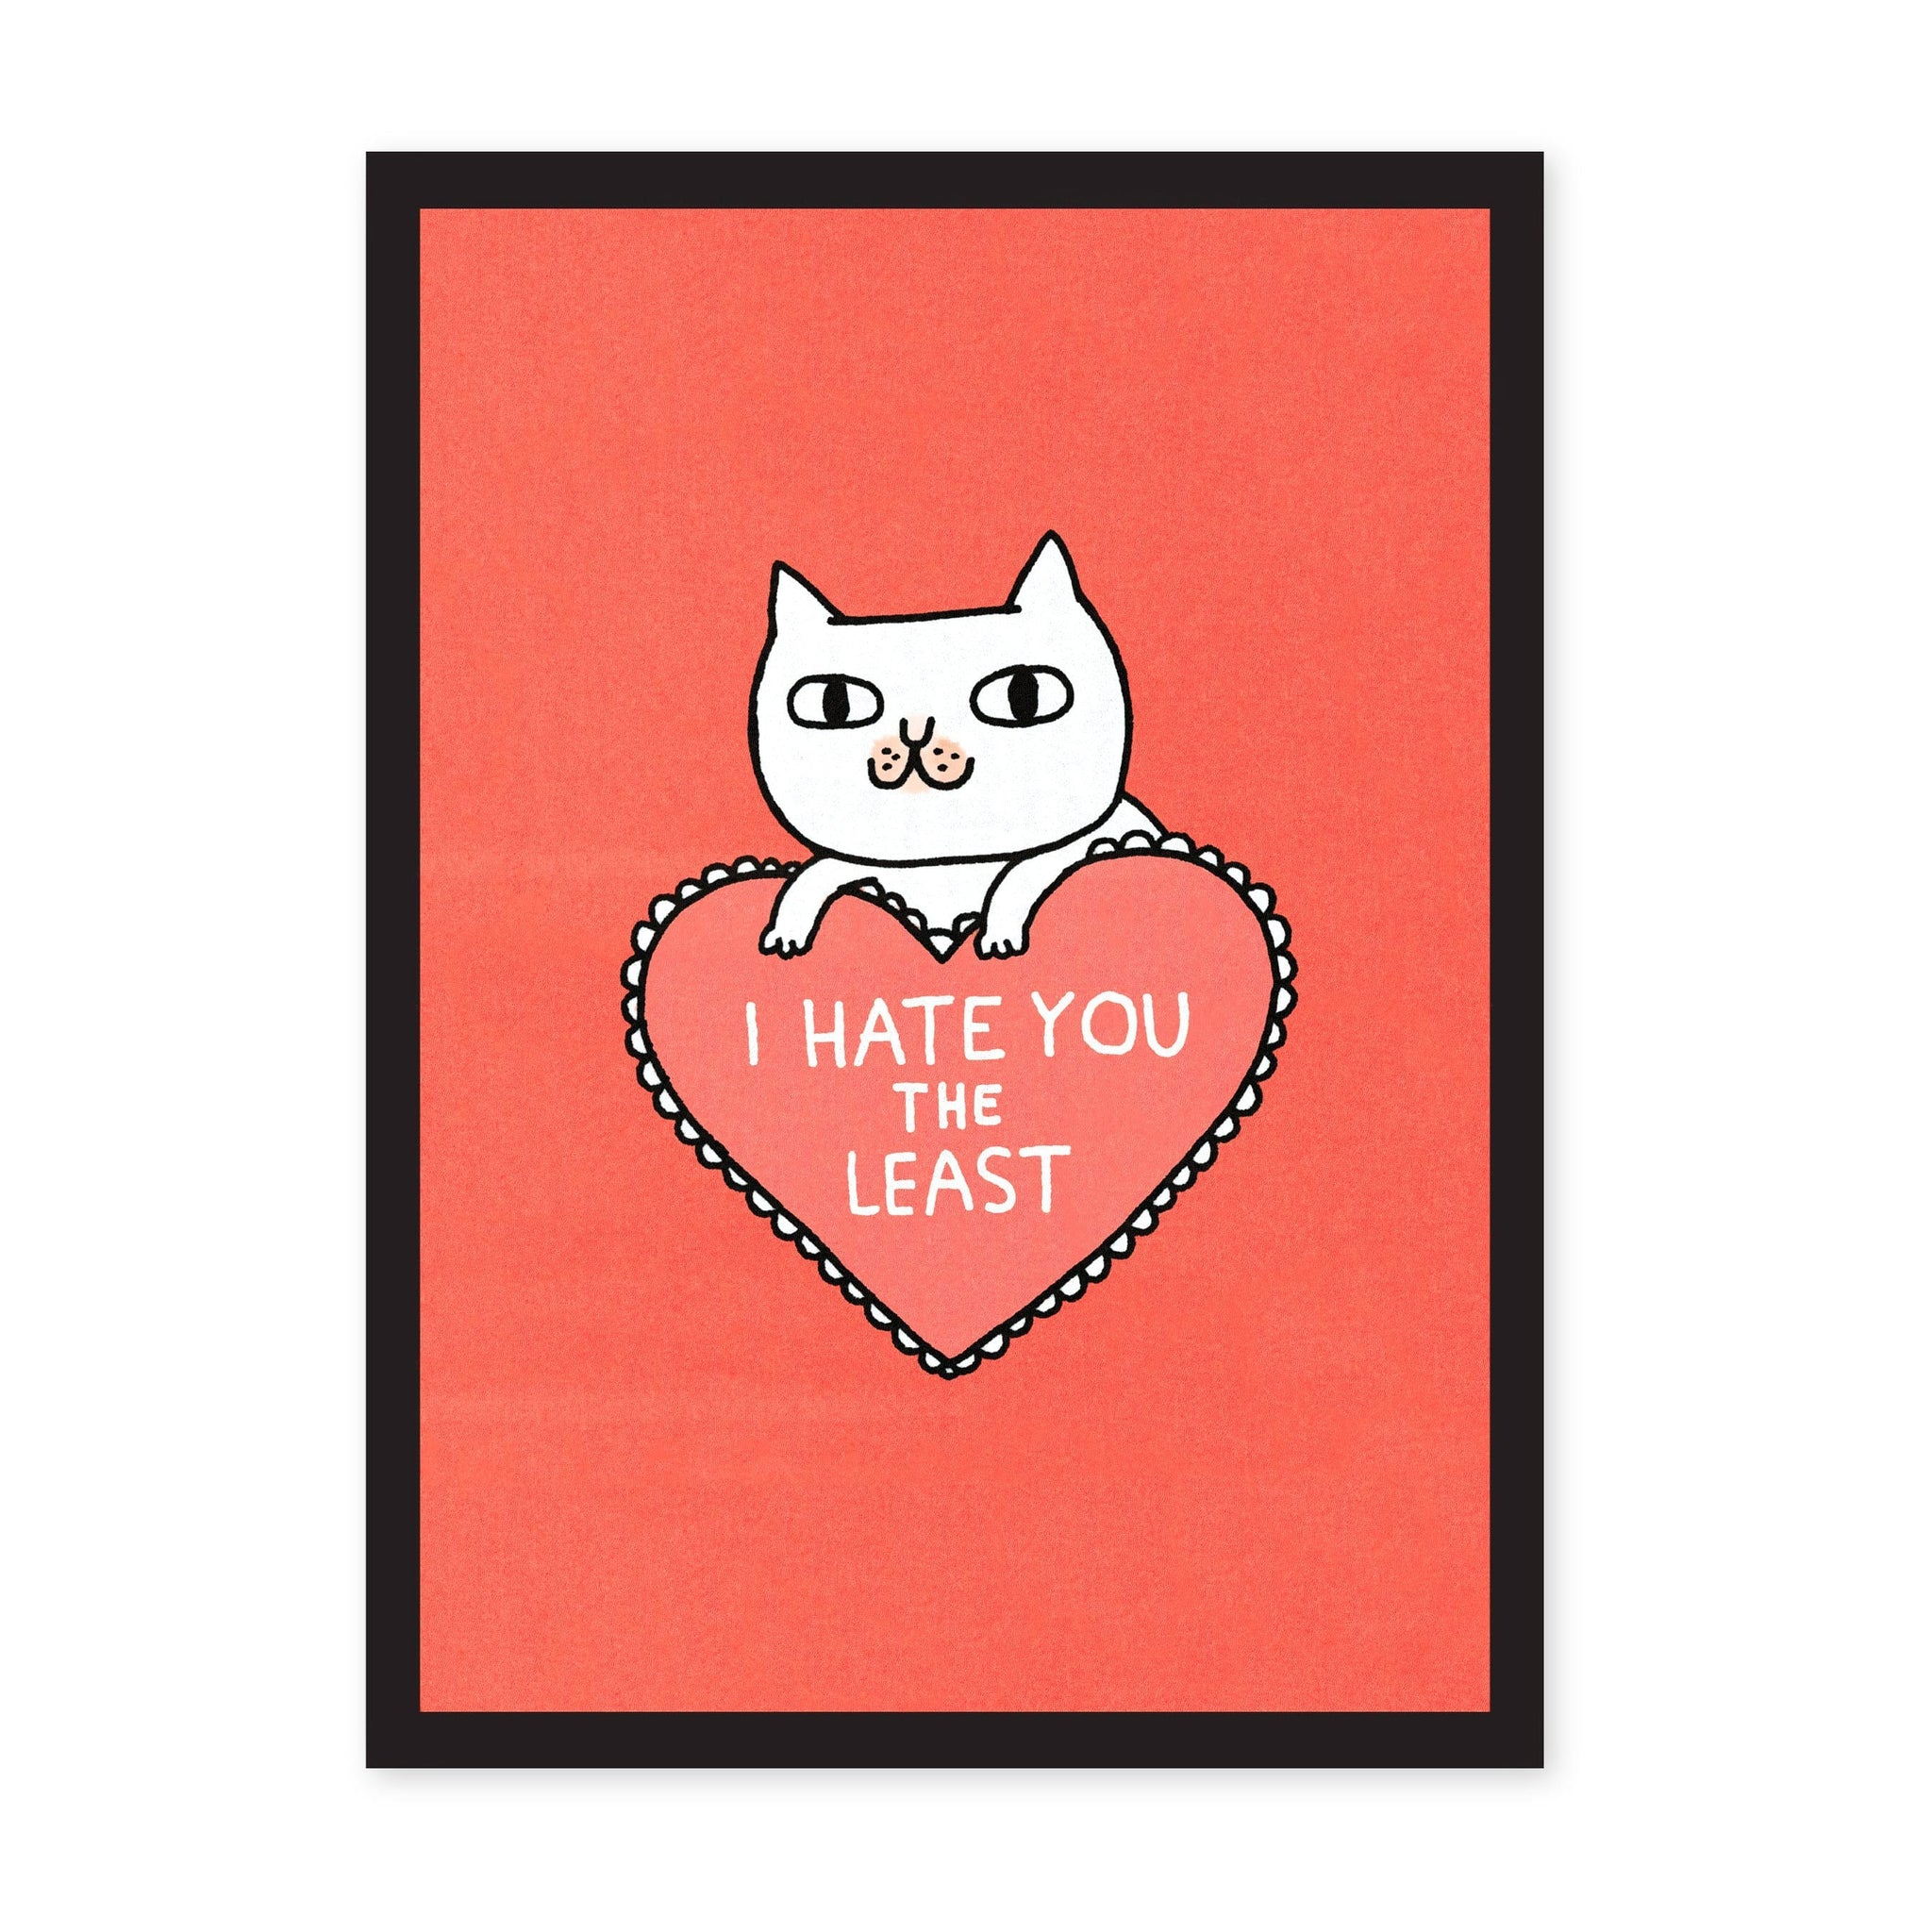 Pink red art print with illustrated white cat, and pink heart with white pun text